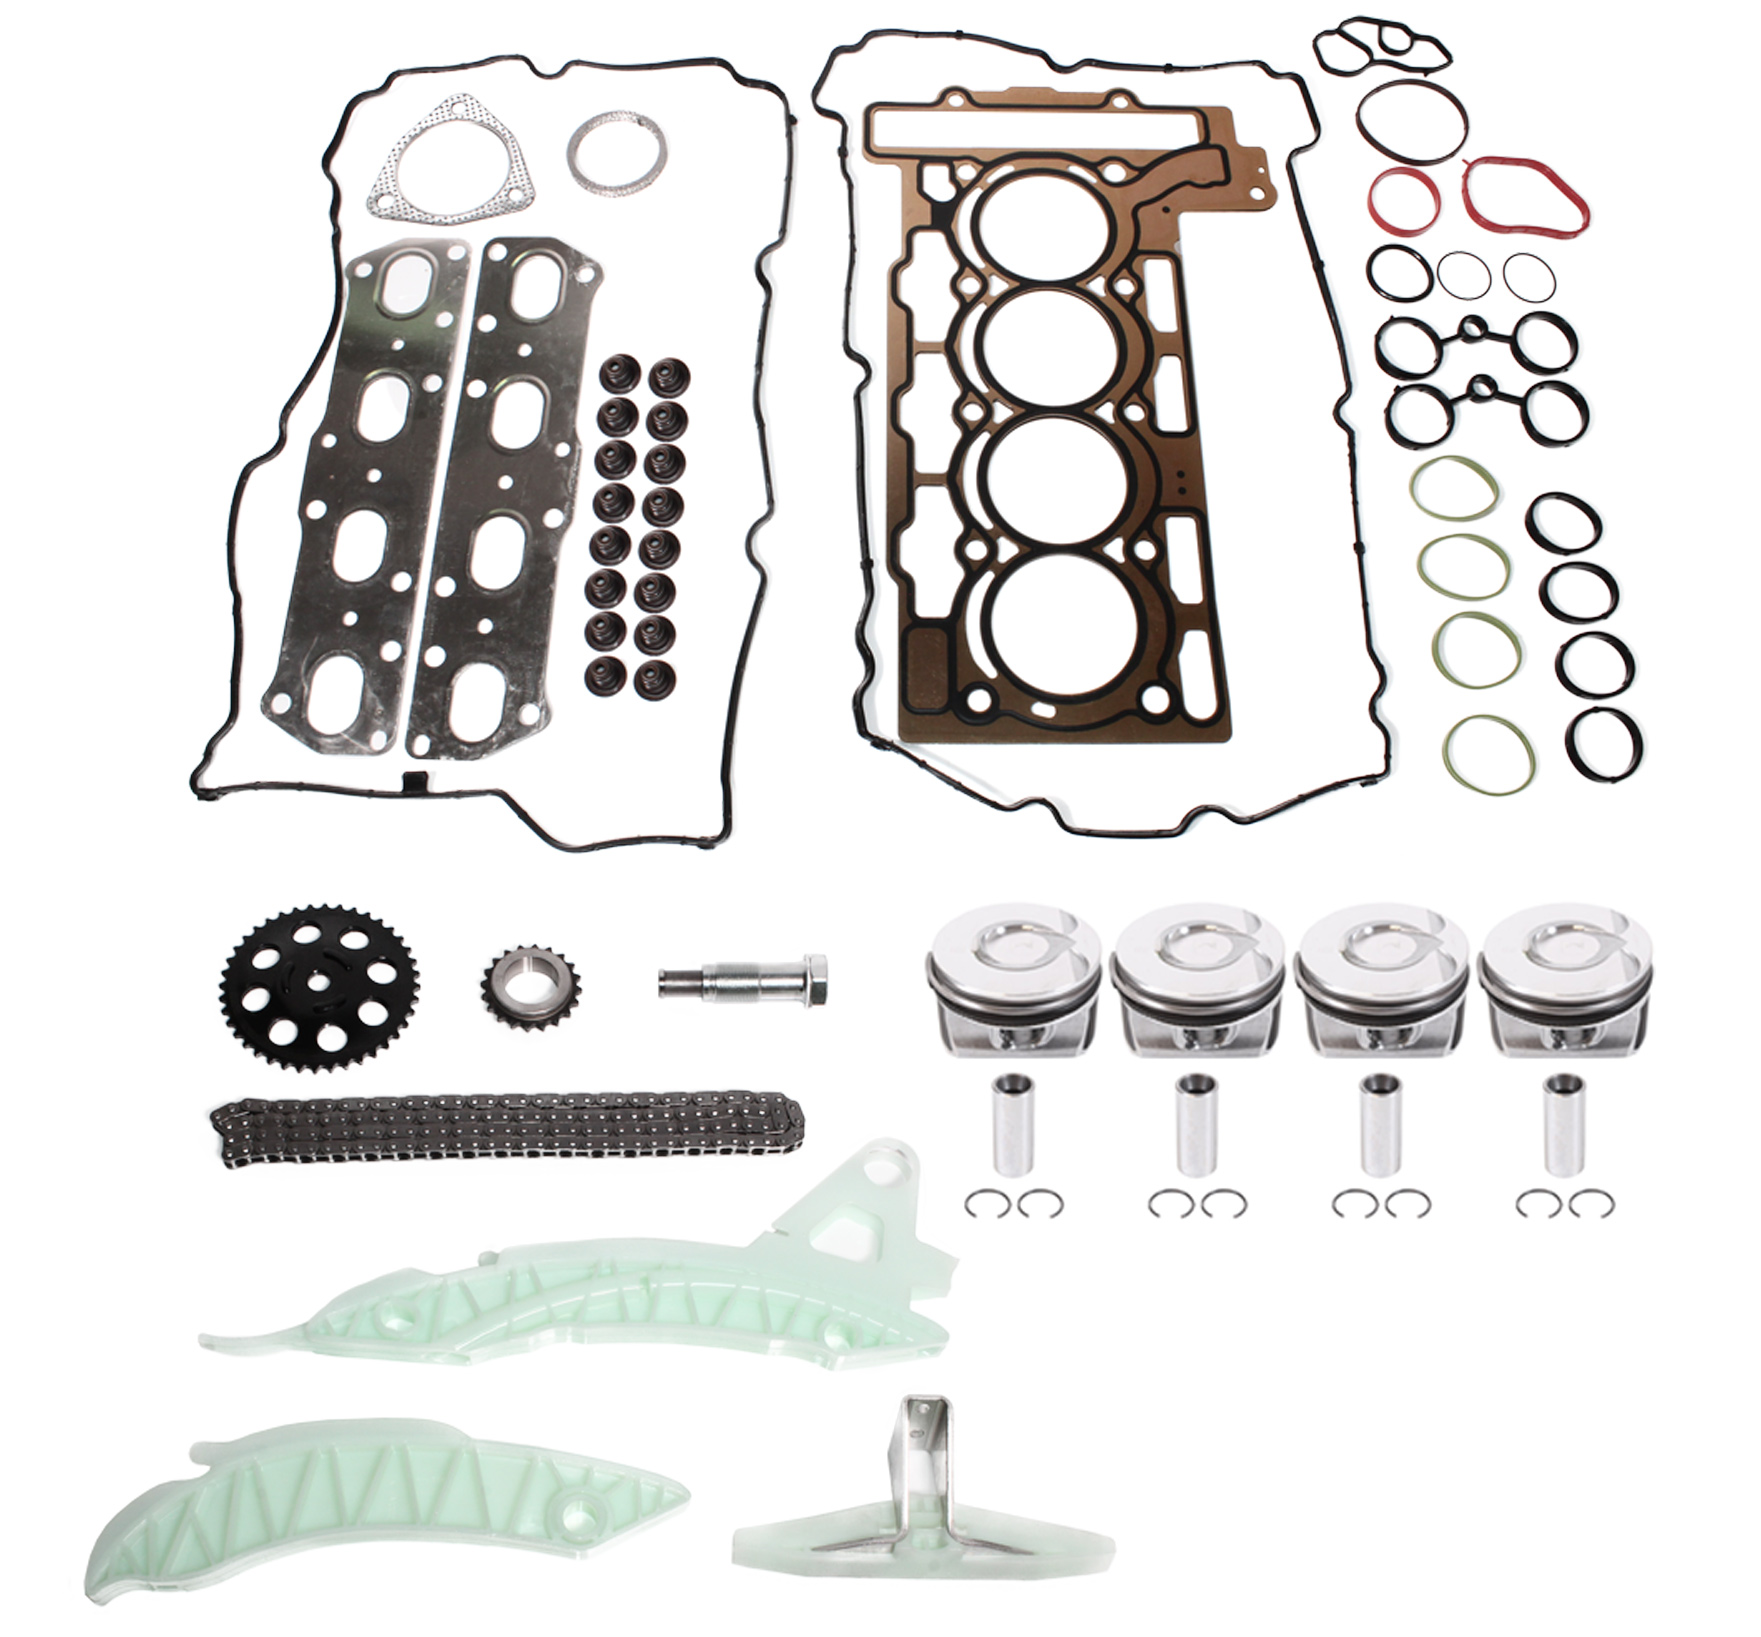 Cylinder head gasket Timing chain kit Mini John Cooper Works 1.6 N14B16A NEW